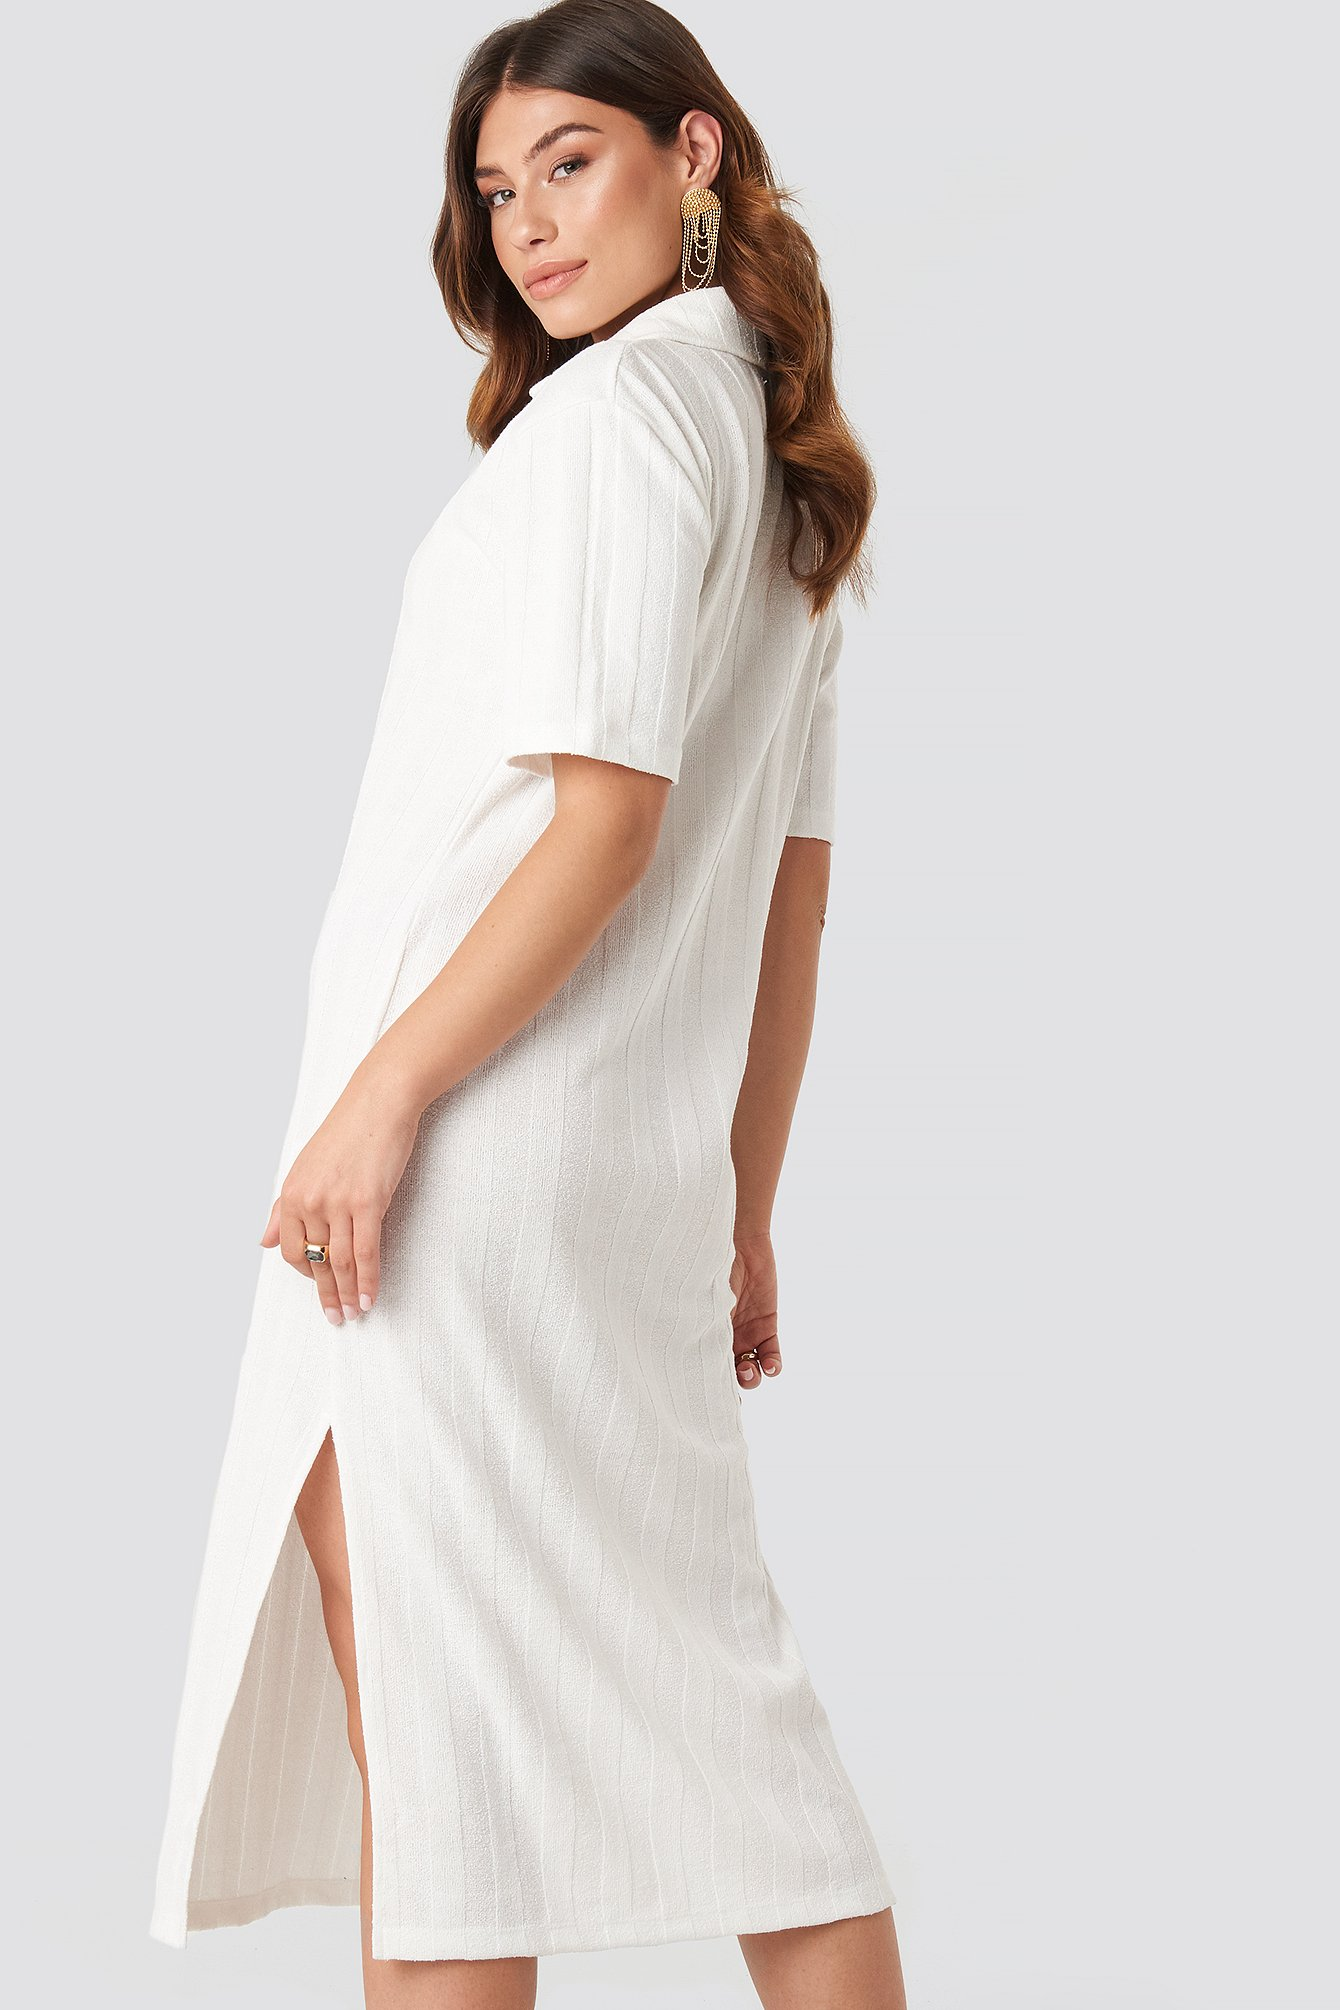 Offwhite Collar V Front Knitted Dress